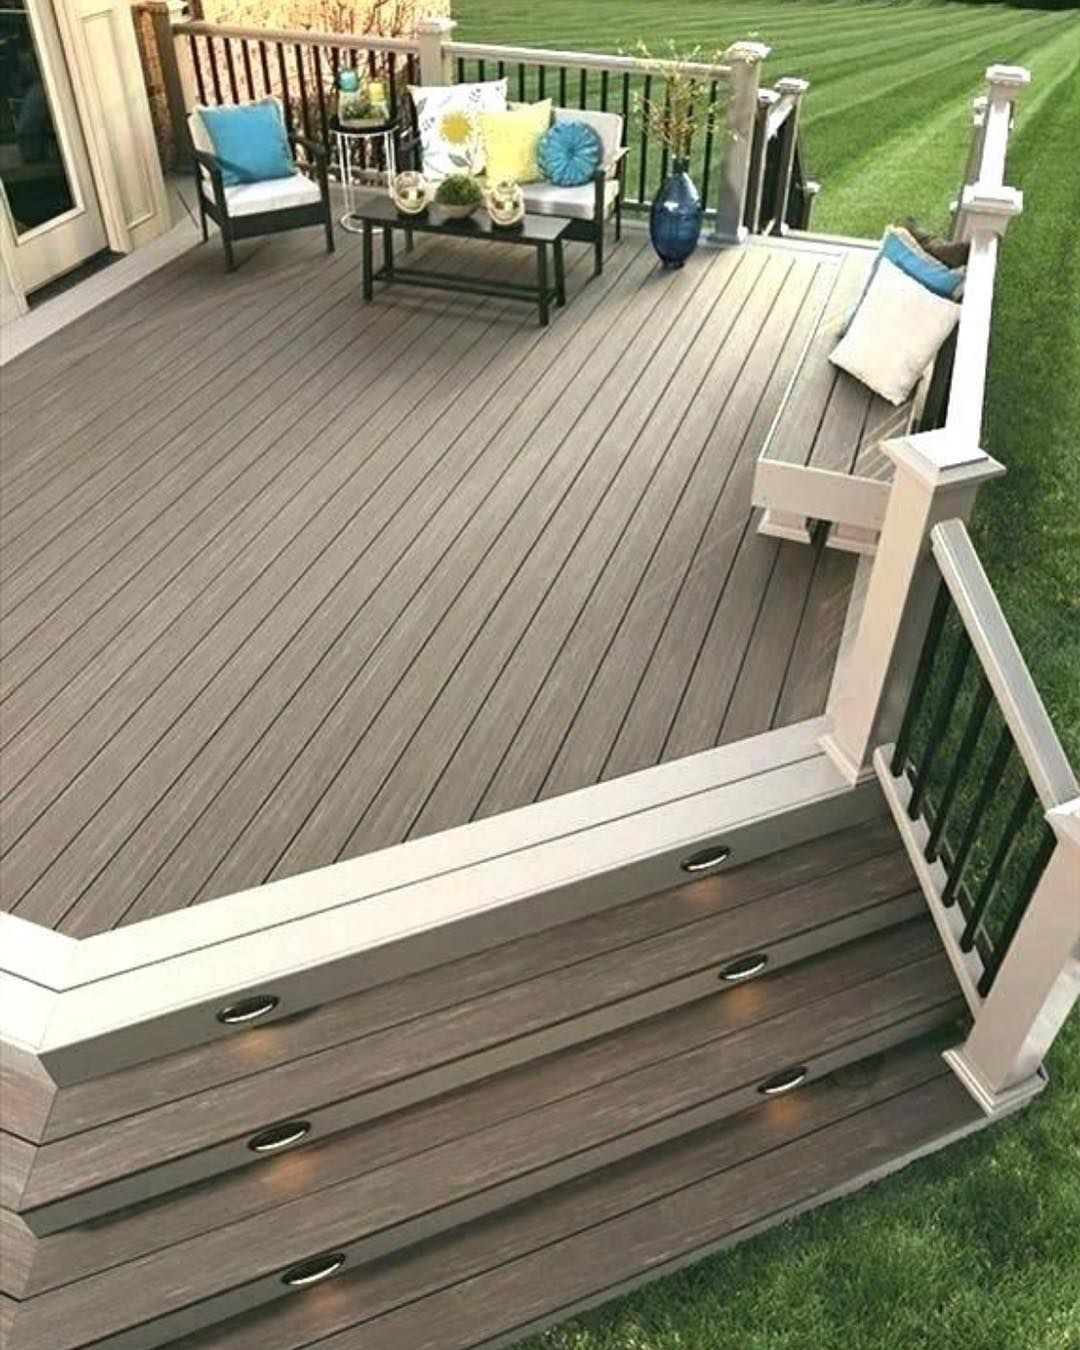 Here Are The 12 Design Tips To Make A Small Bathroom Better Katie S Crochet Deck Designs Backyard Patio Deck Designs Trex Deck